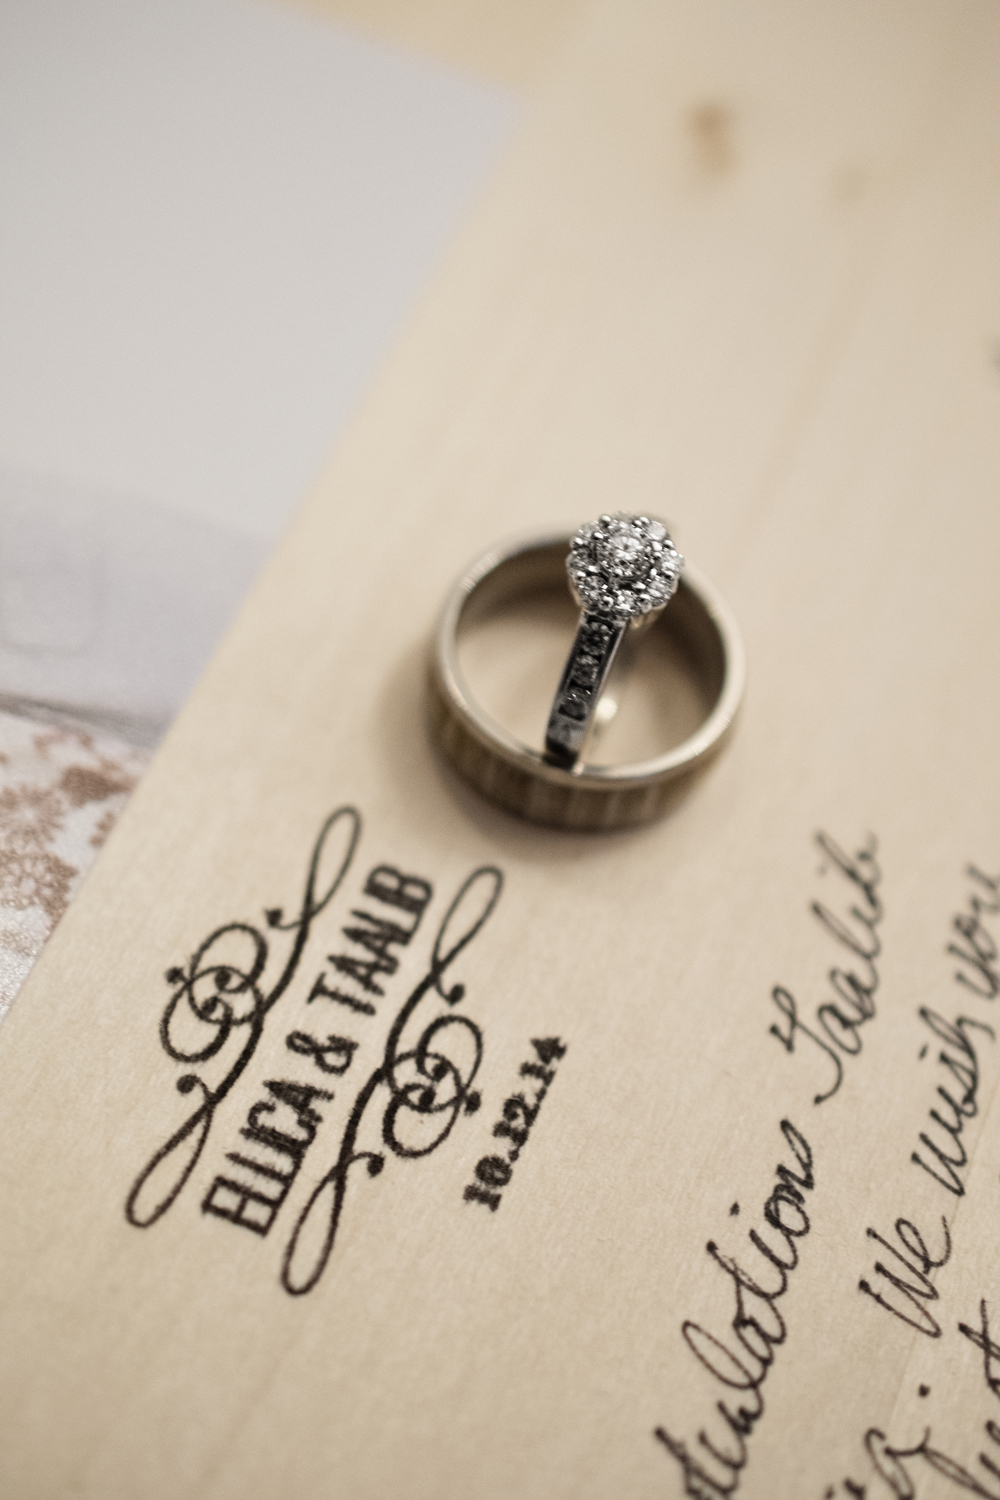 Ring picture on a picture frame with wedding date